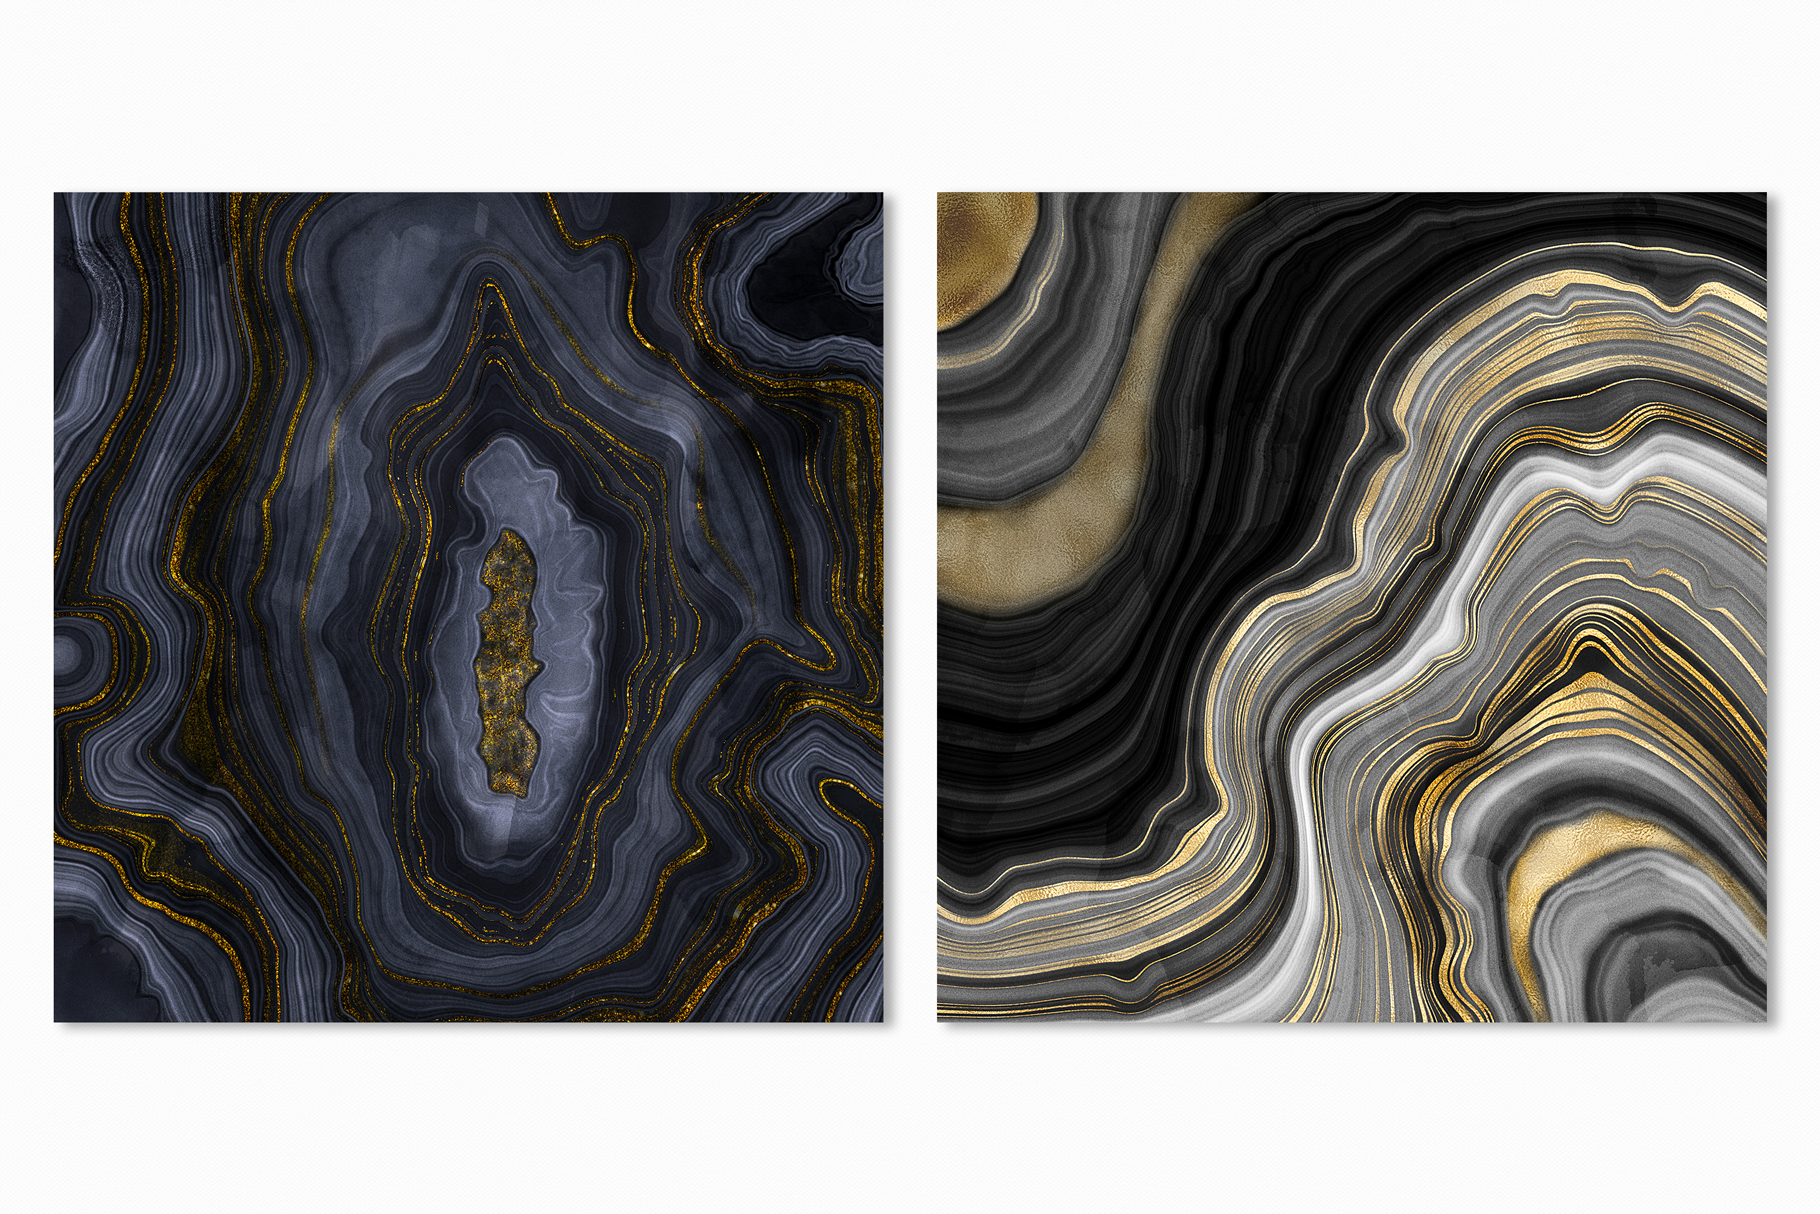 10 Agate Stone Digital Papers - Gold Veined Geode Textures example image 16